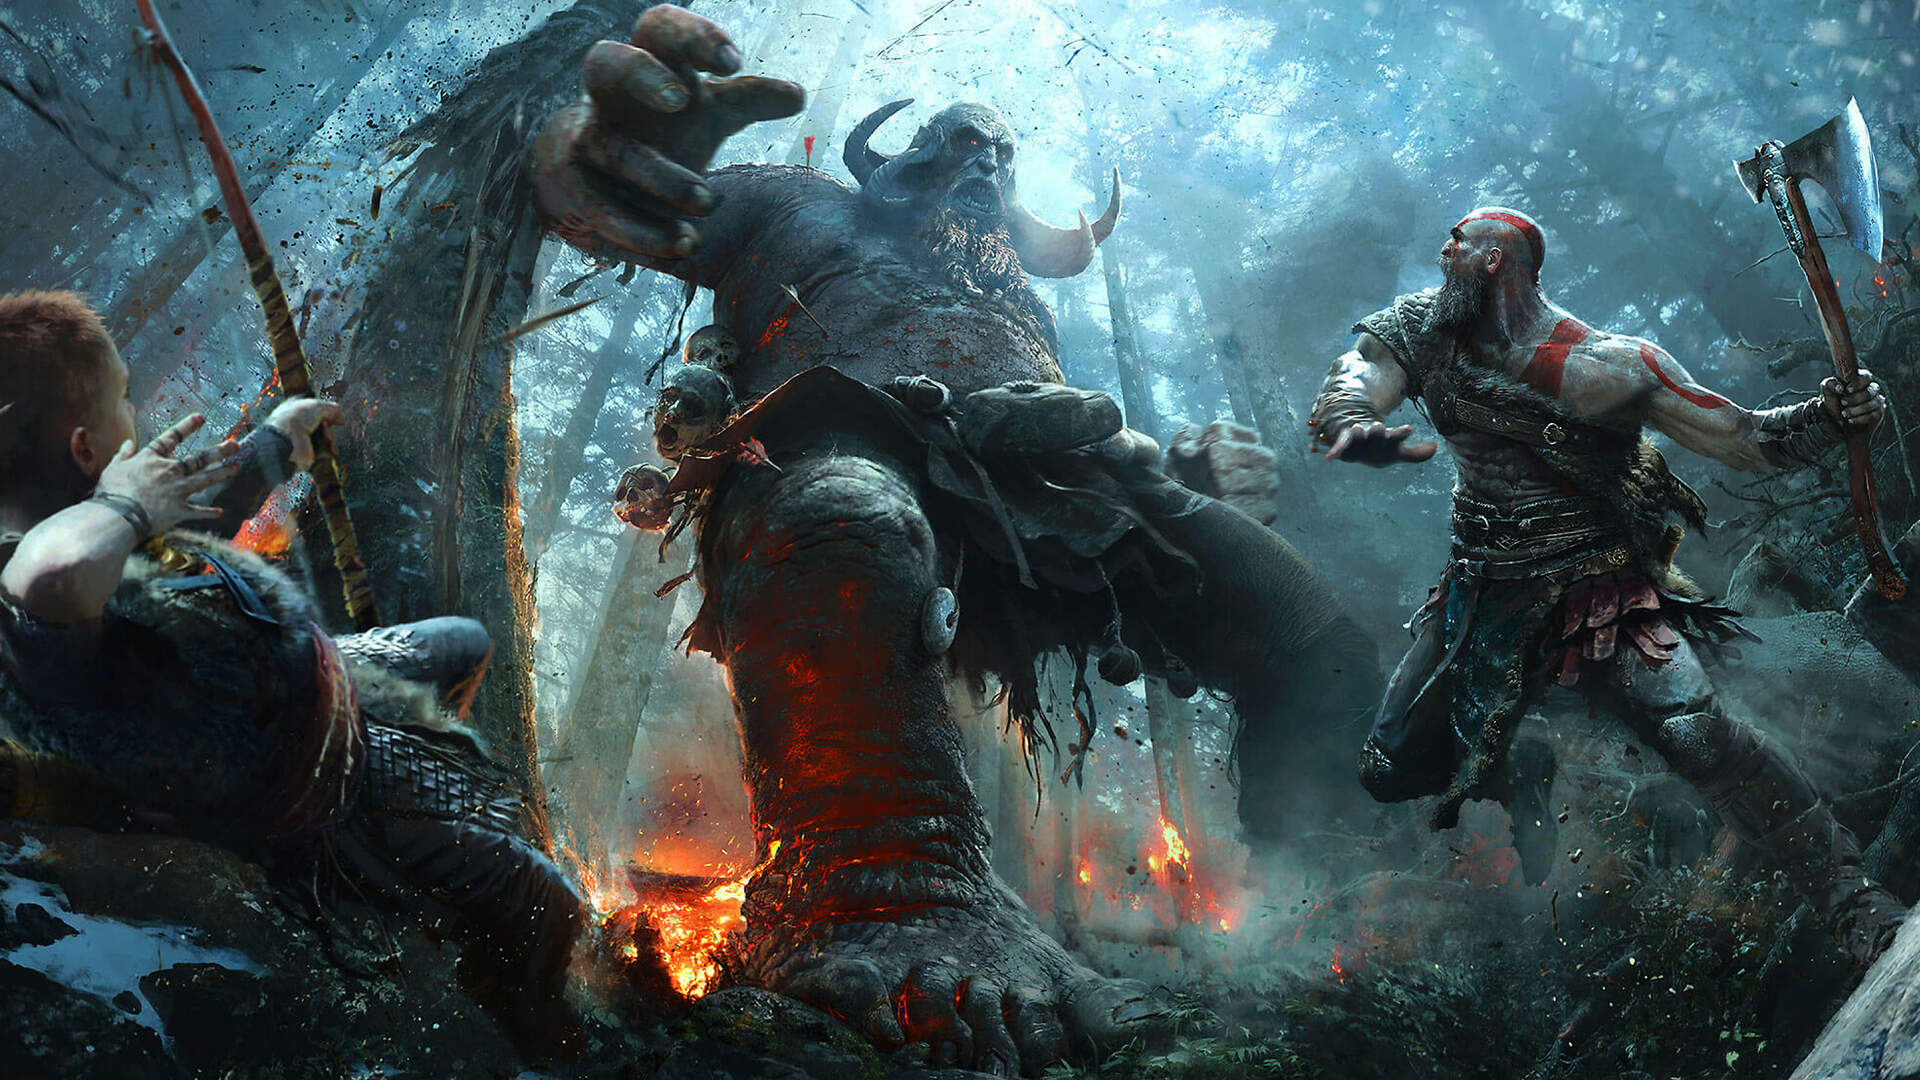 """""""An Unending Series of Compromises:"""" God of War Director Cory Barlog on Building a New Myth From Old Parts"""